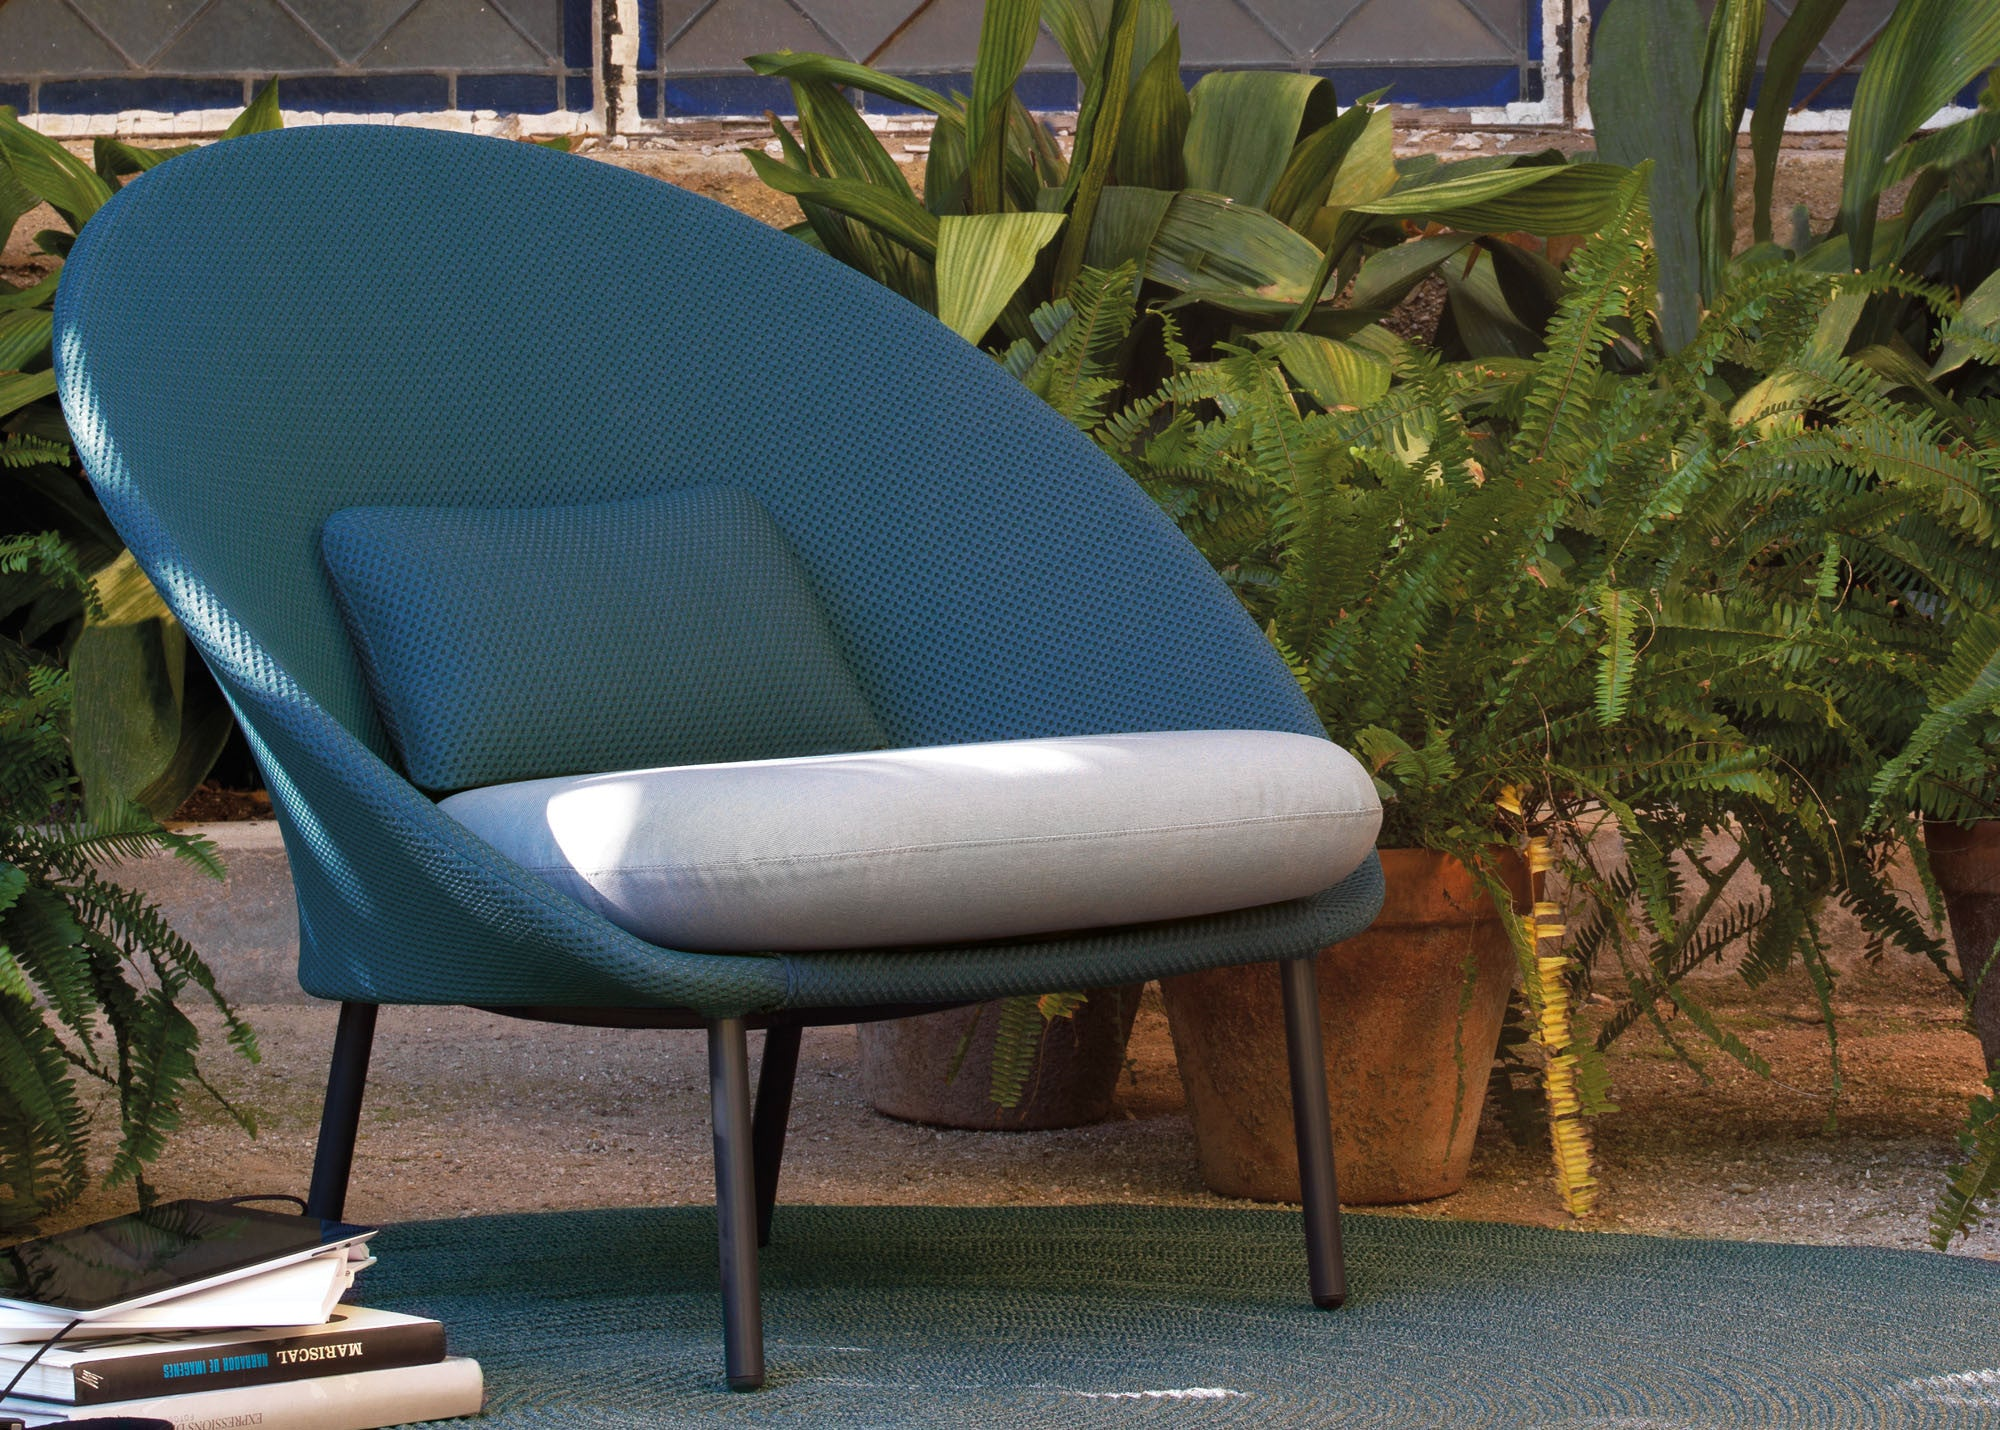 EX Twins Outdoor Lounge Chair C170 1 2 Hunter Valley Design